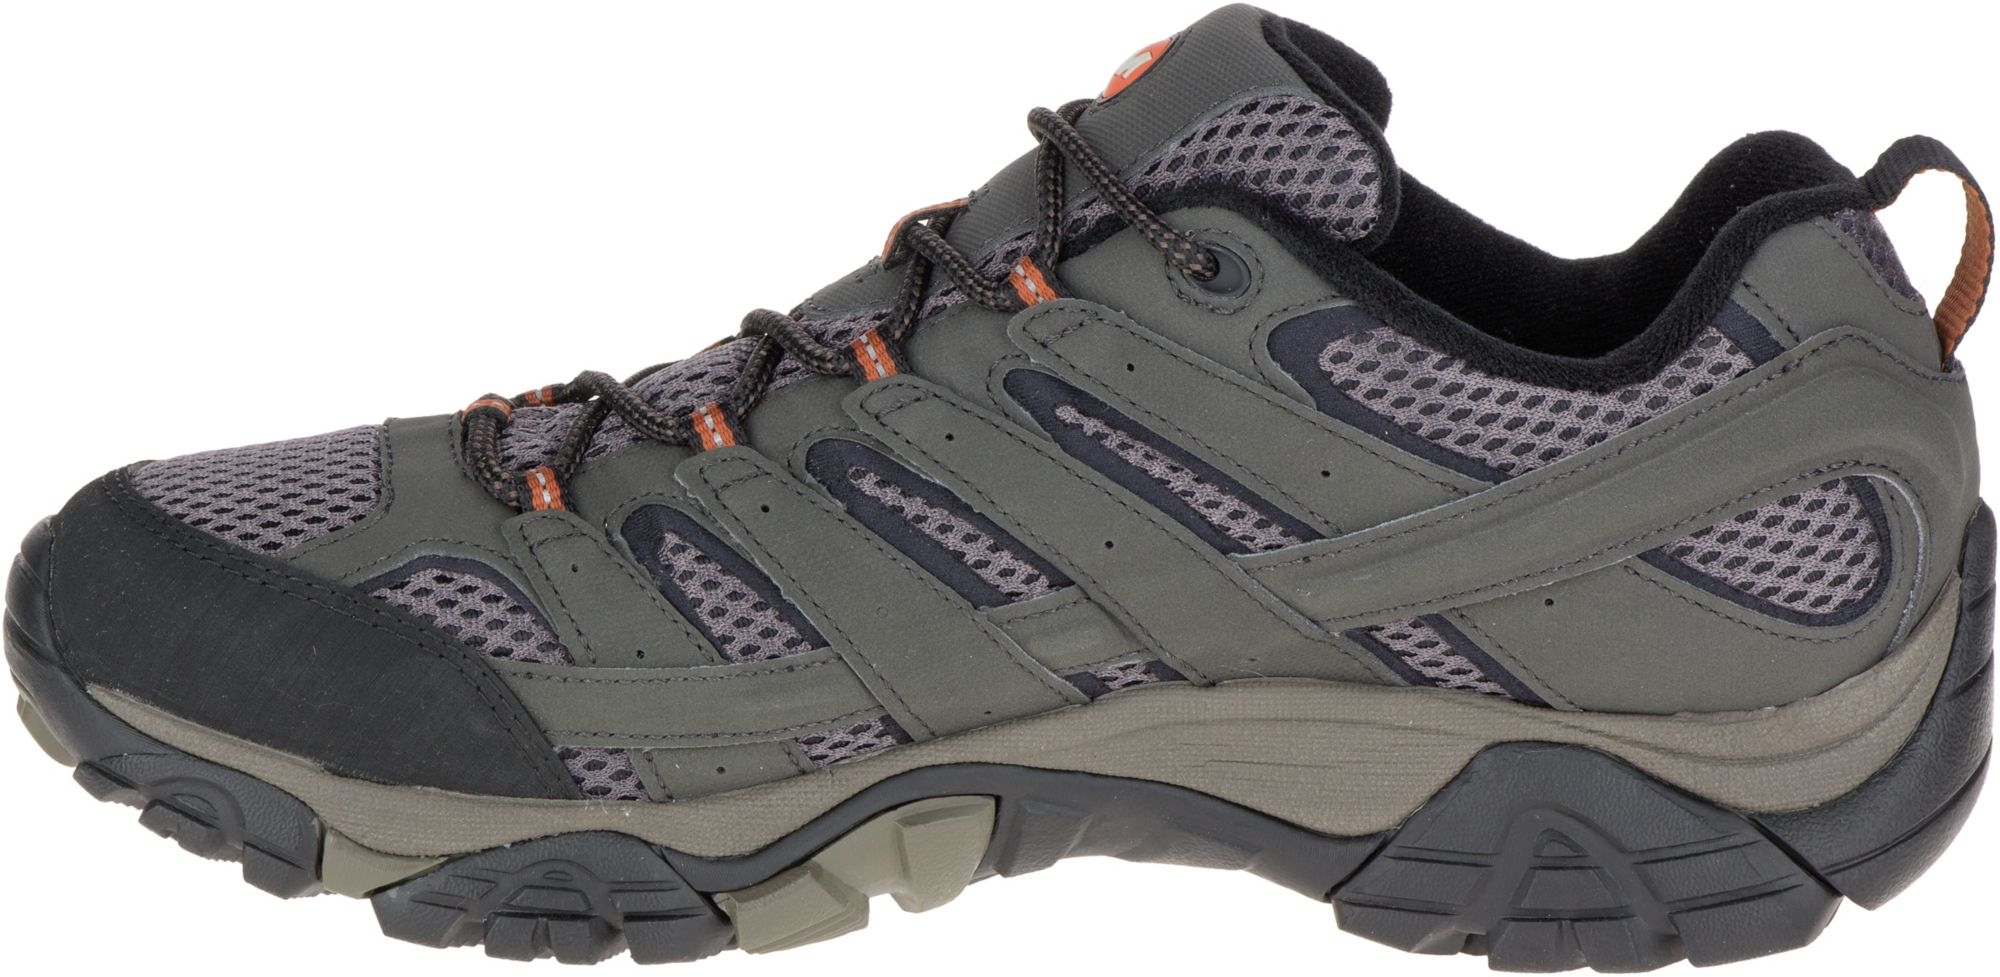 merrell mens moab 2 mid gtx hiking shoe - beluga ve